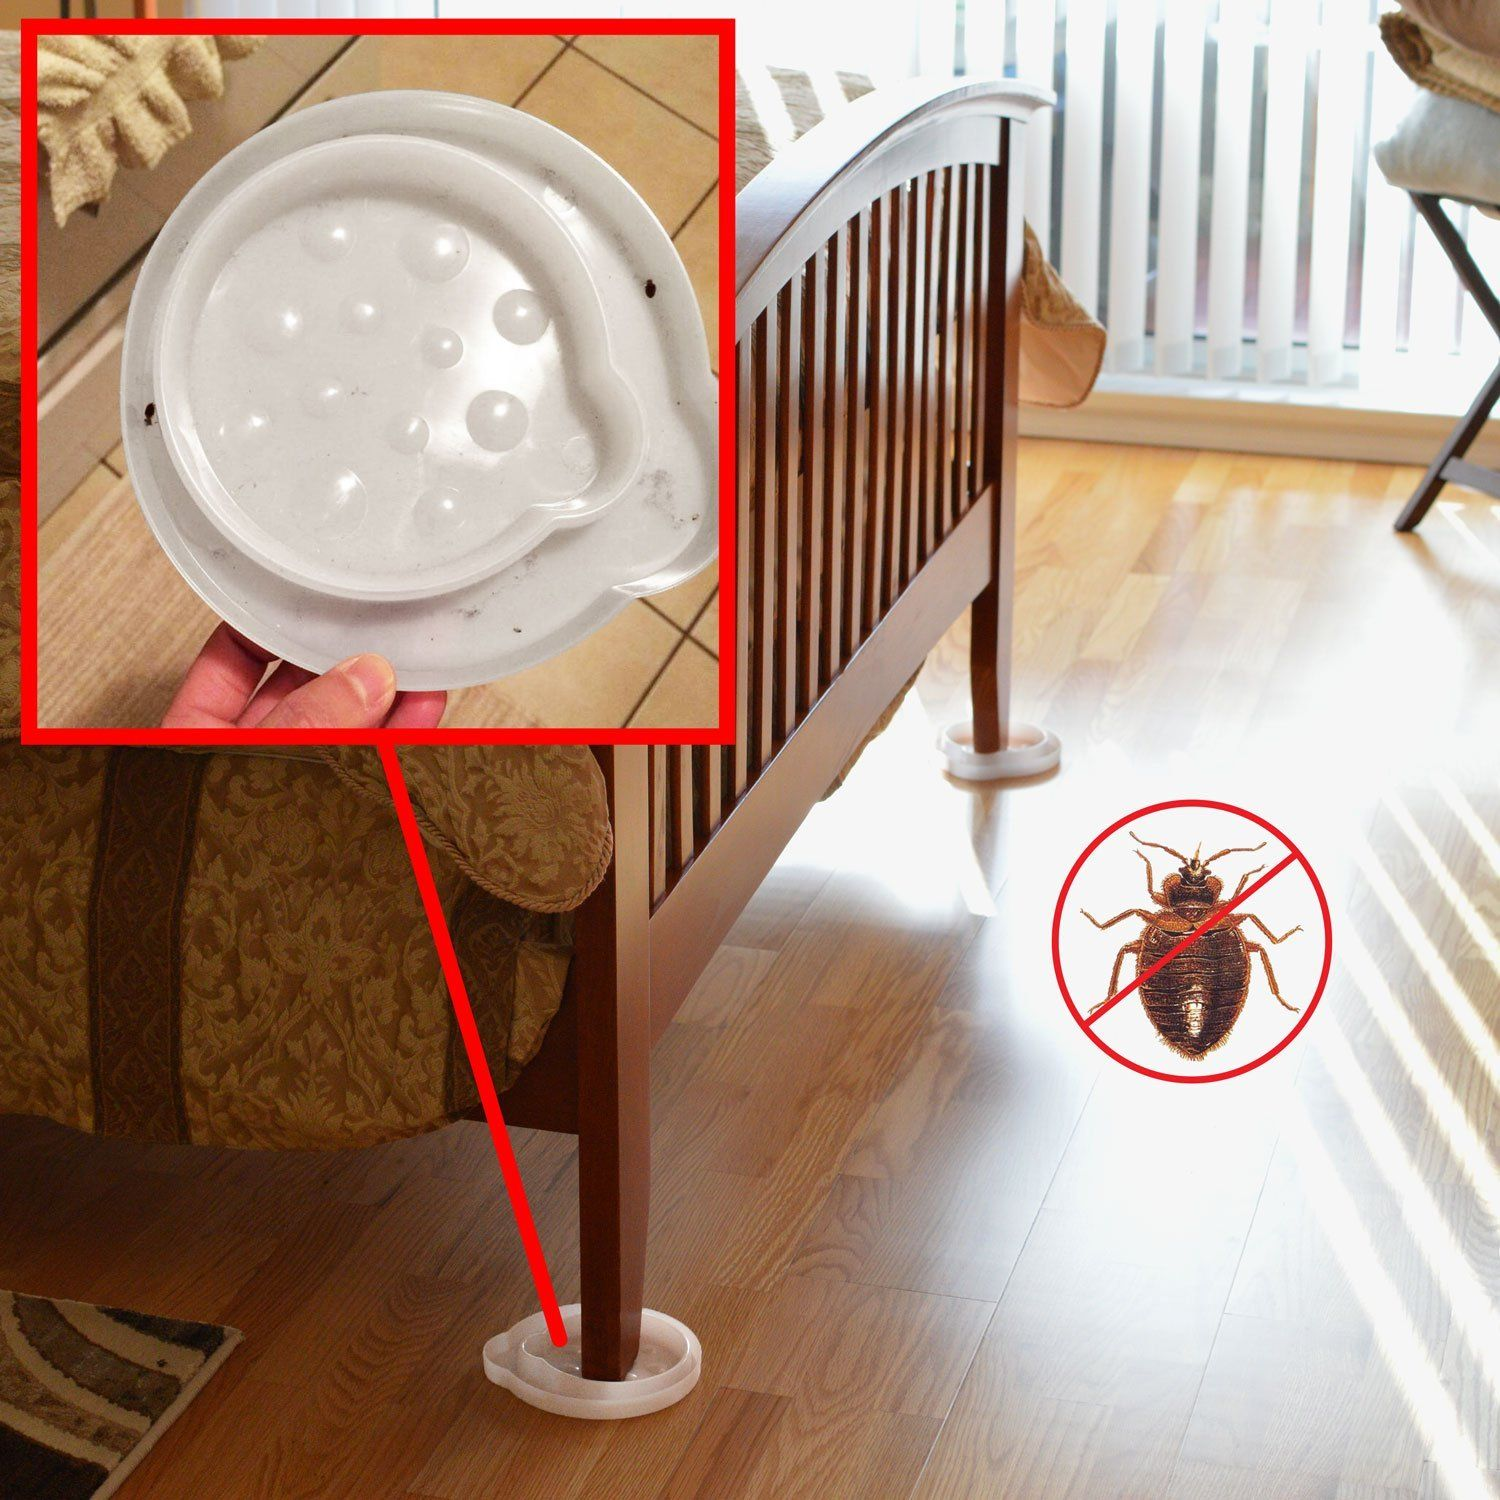 Robot Check Bed bug trap, Bug trap, Bed bugs